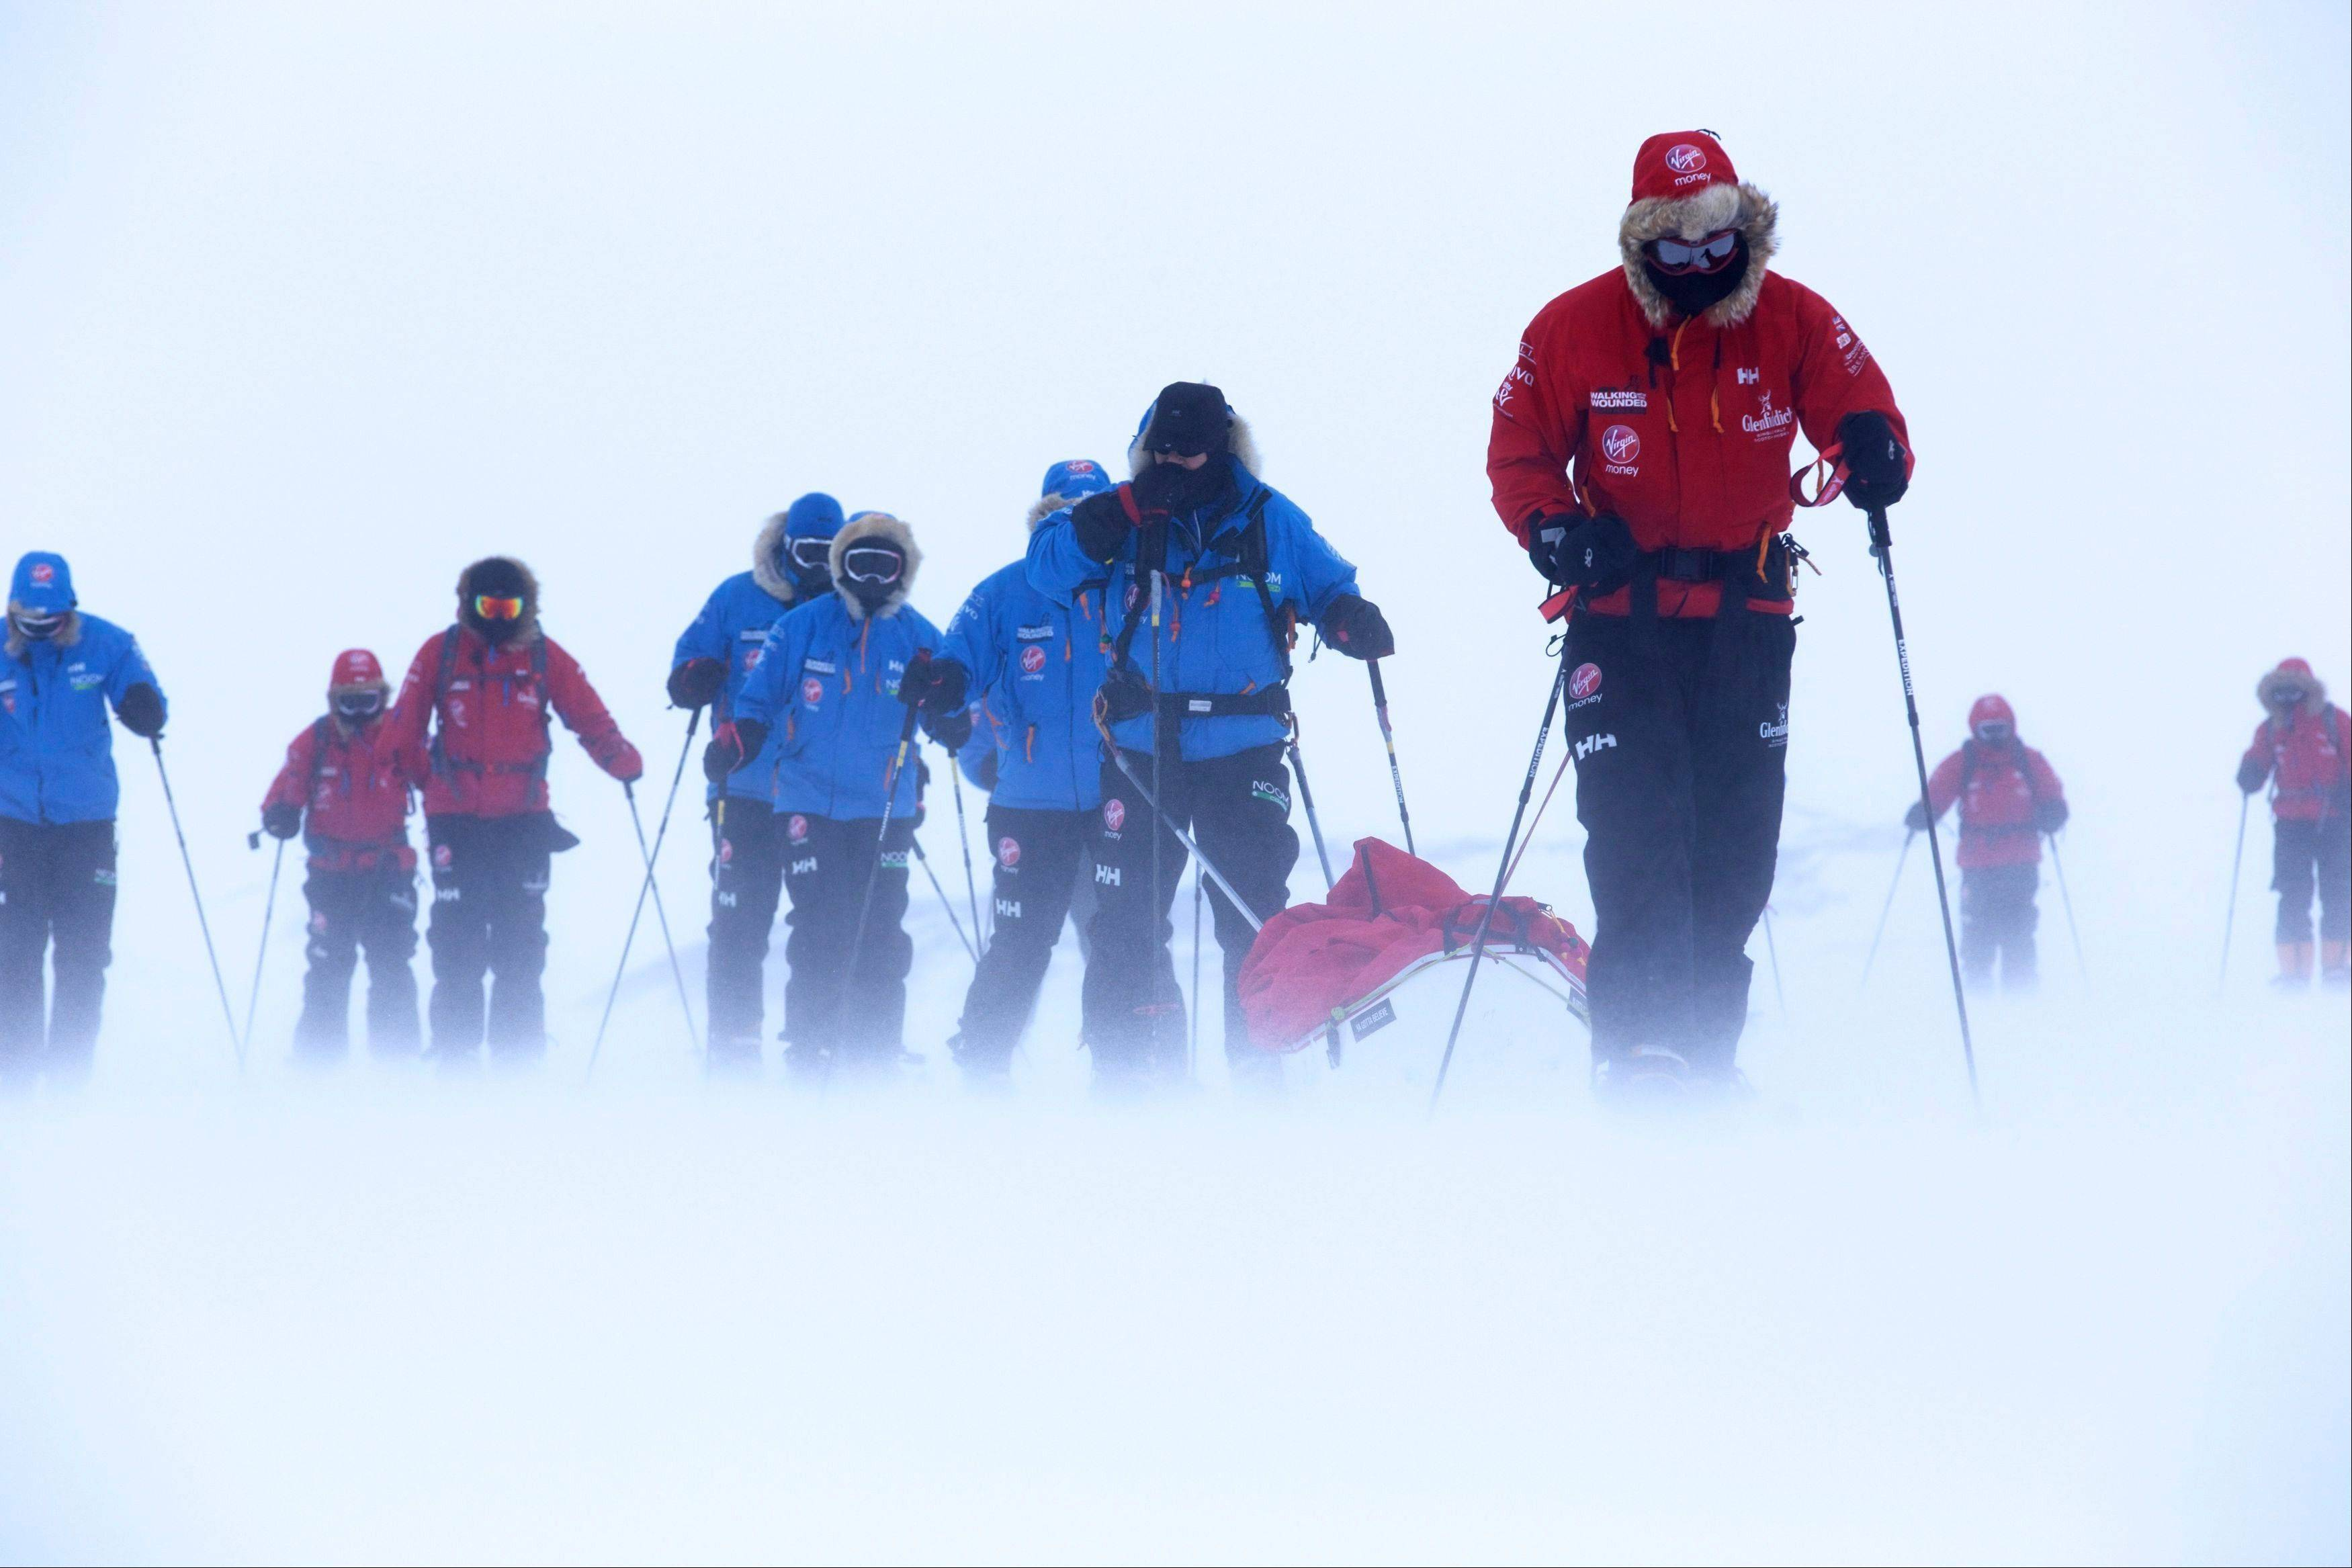 Britain's Prince Harry, right, during training near Novo, Antarctica, ahead of an Antarctic charity race.